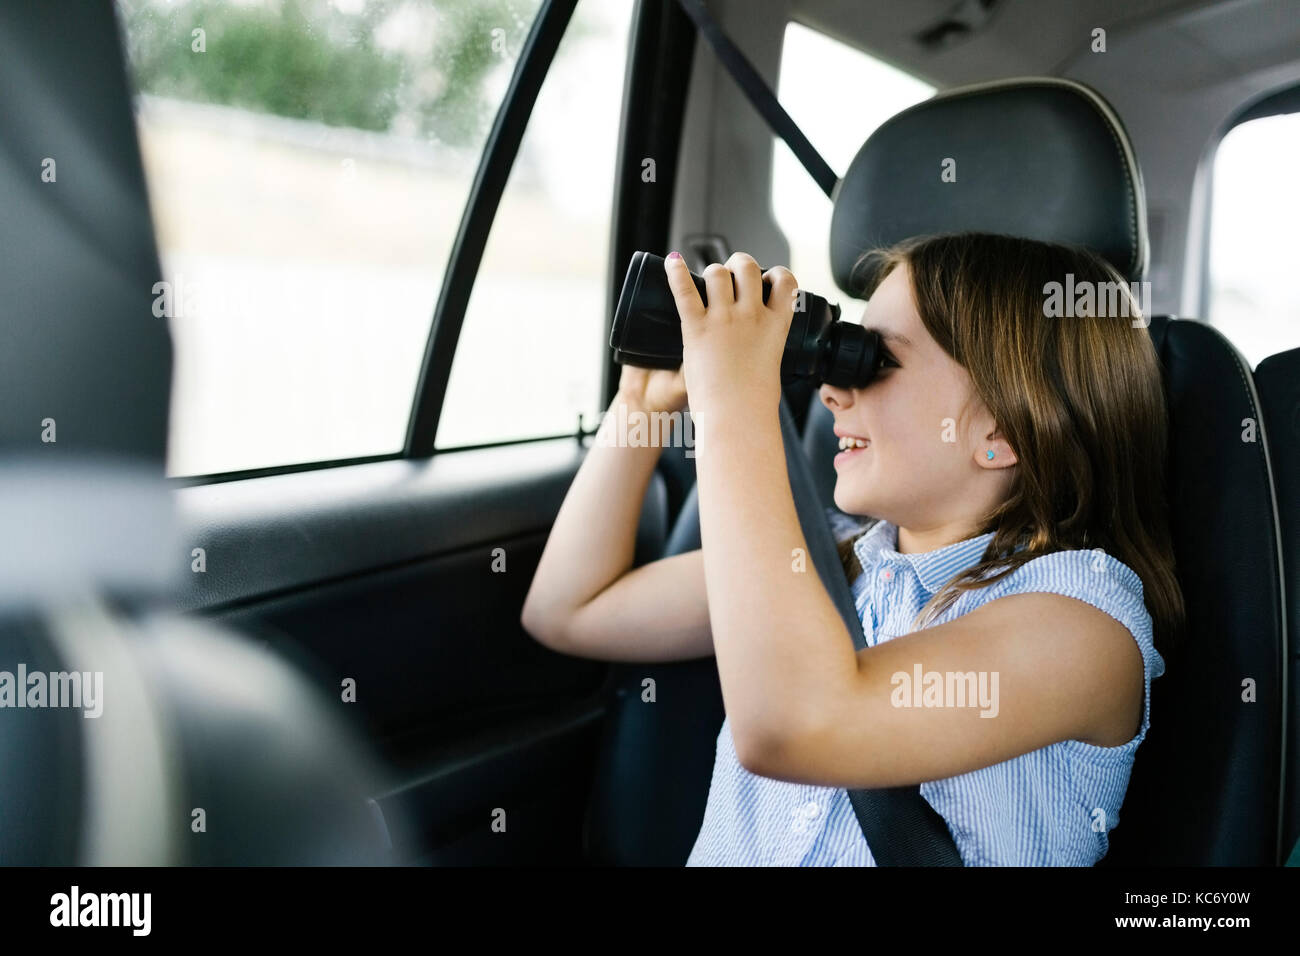 Girl ( 8-9) sitting in car and looking through binoculars - Stock Image